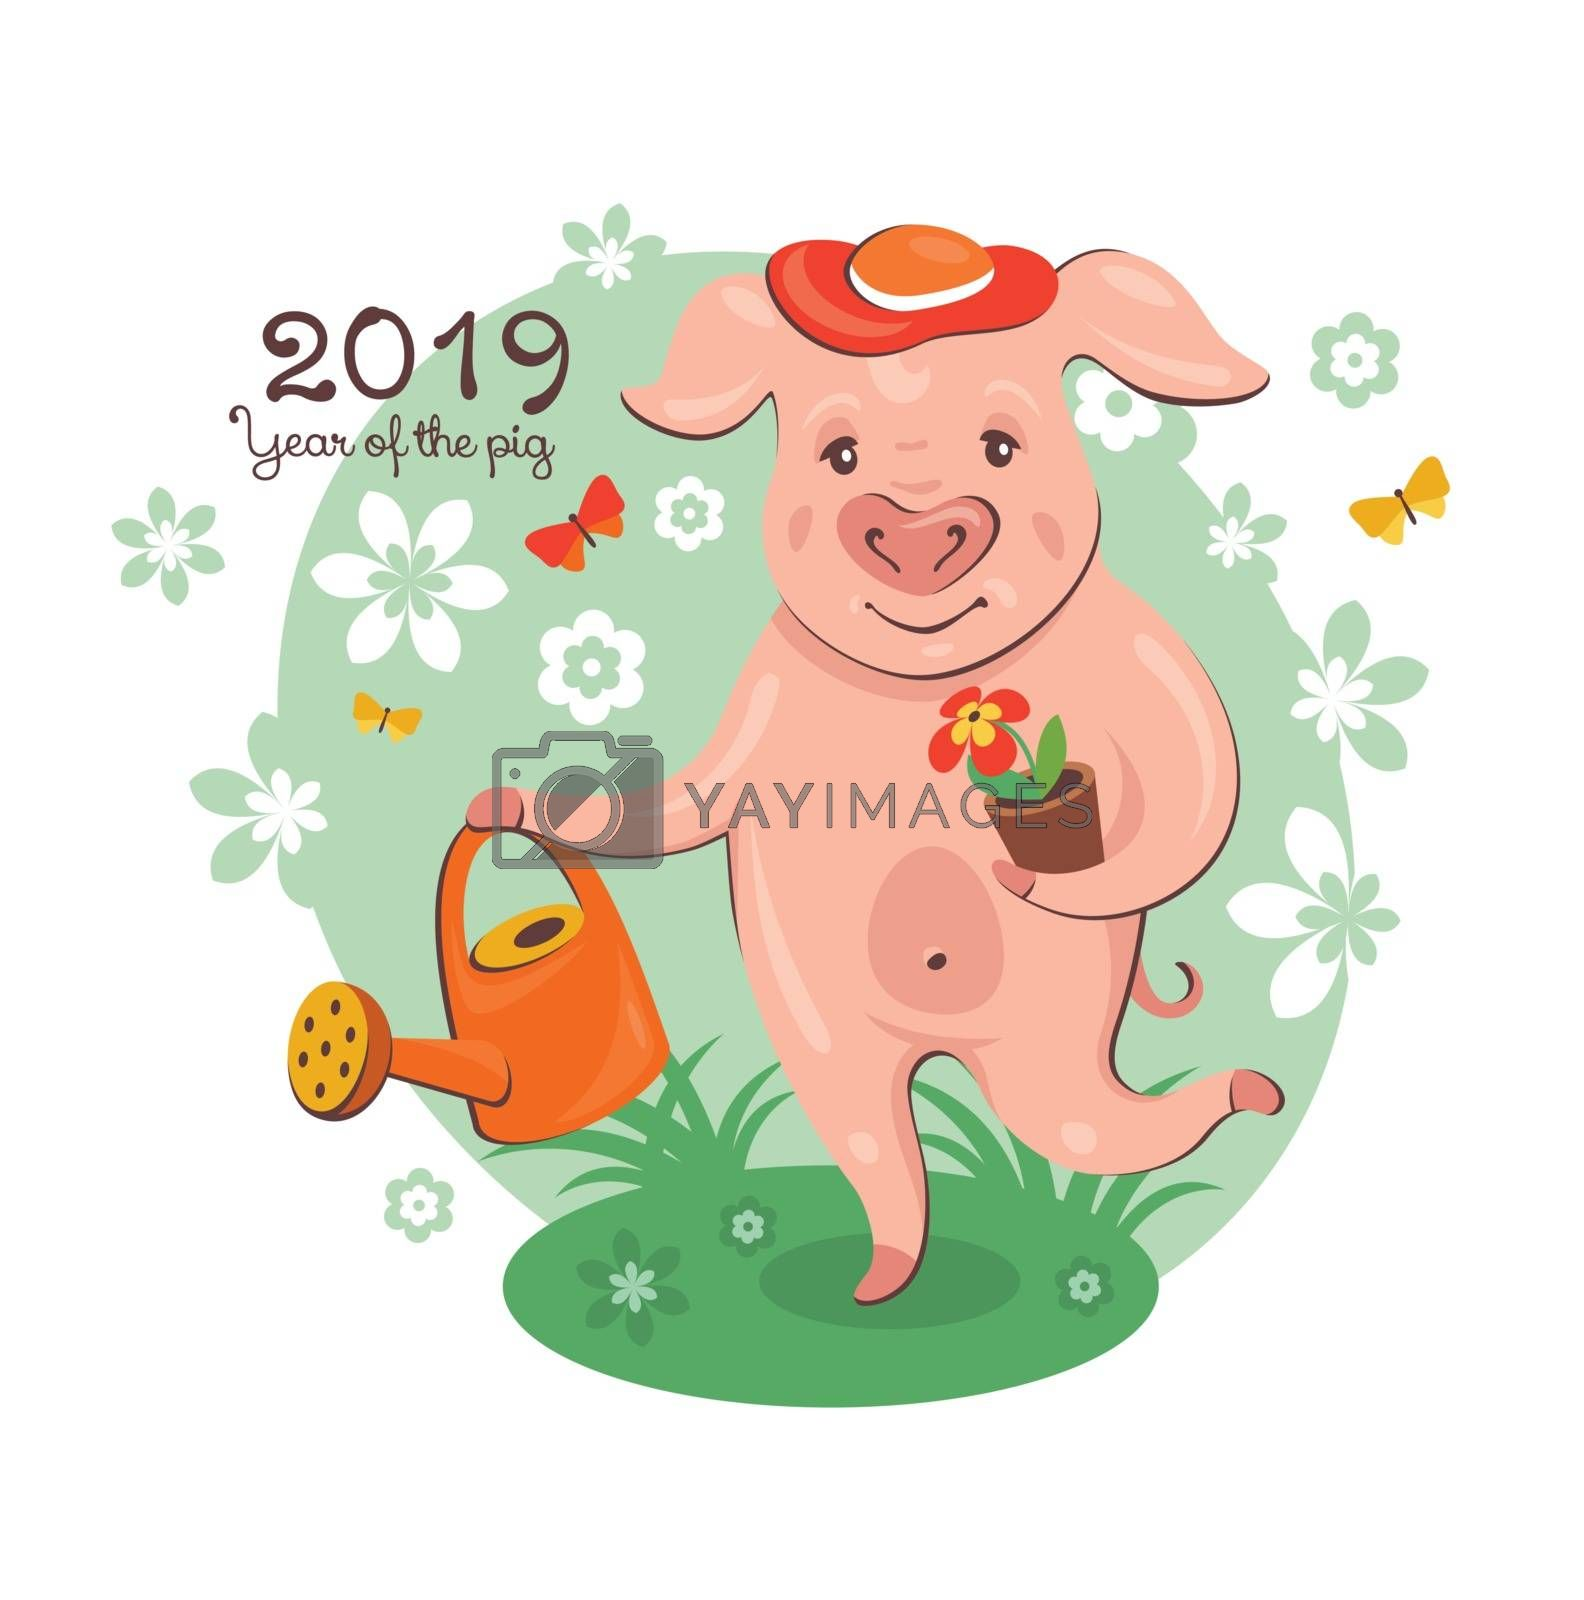 2019 New Year greeting card with a cute pig gardener. Vector illustration.